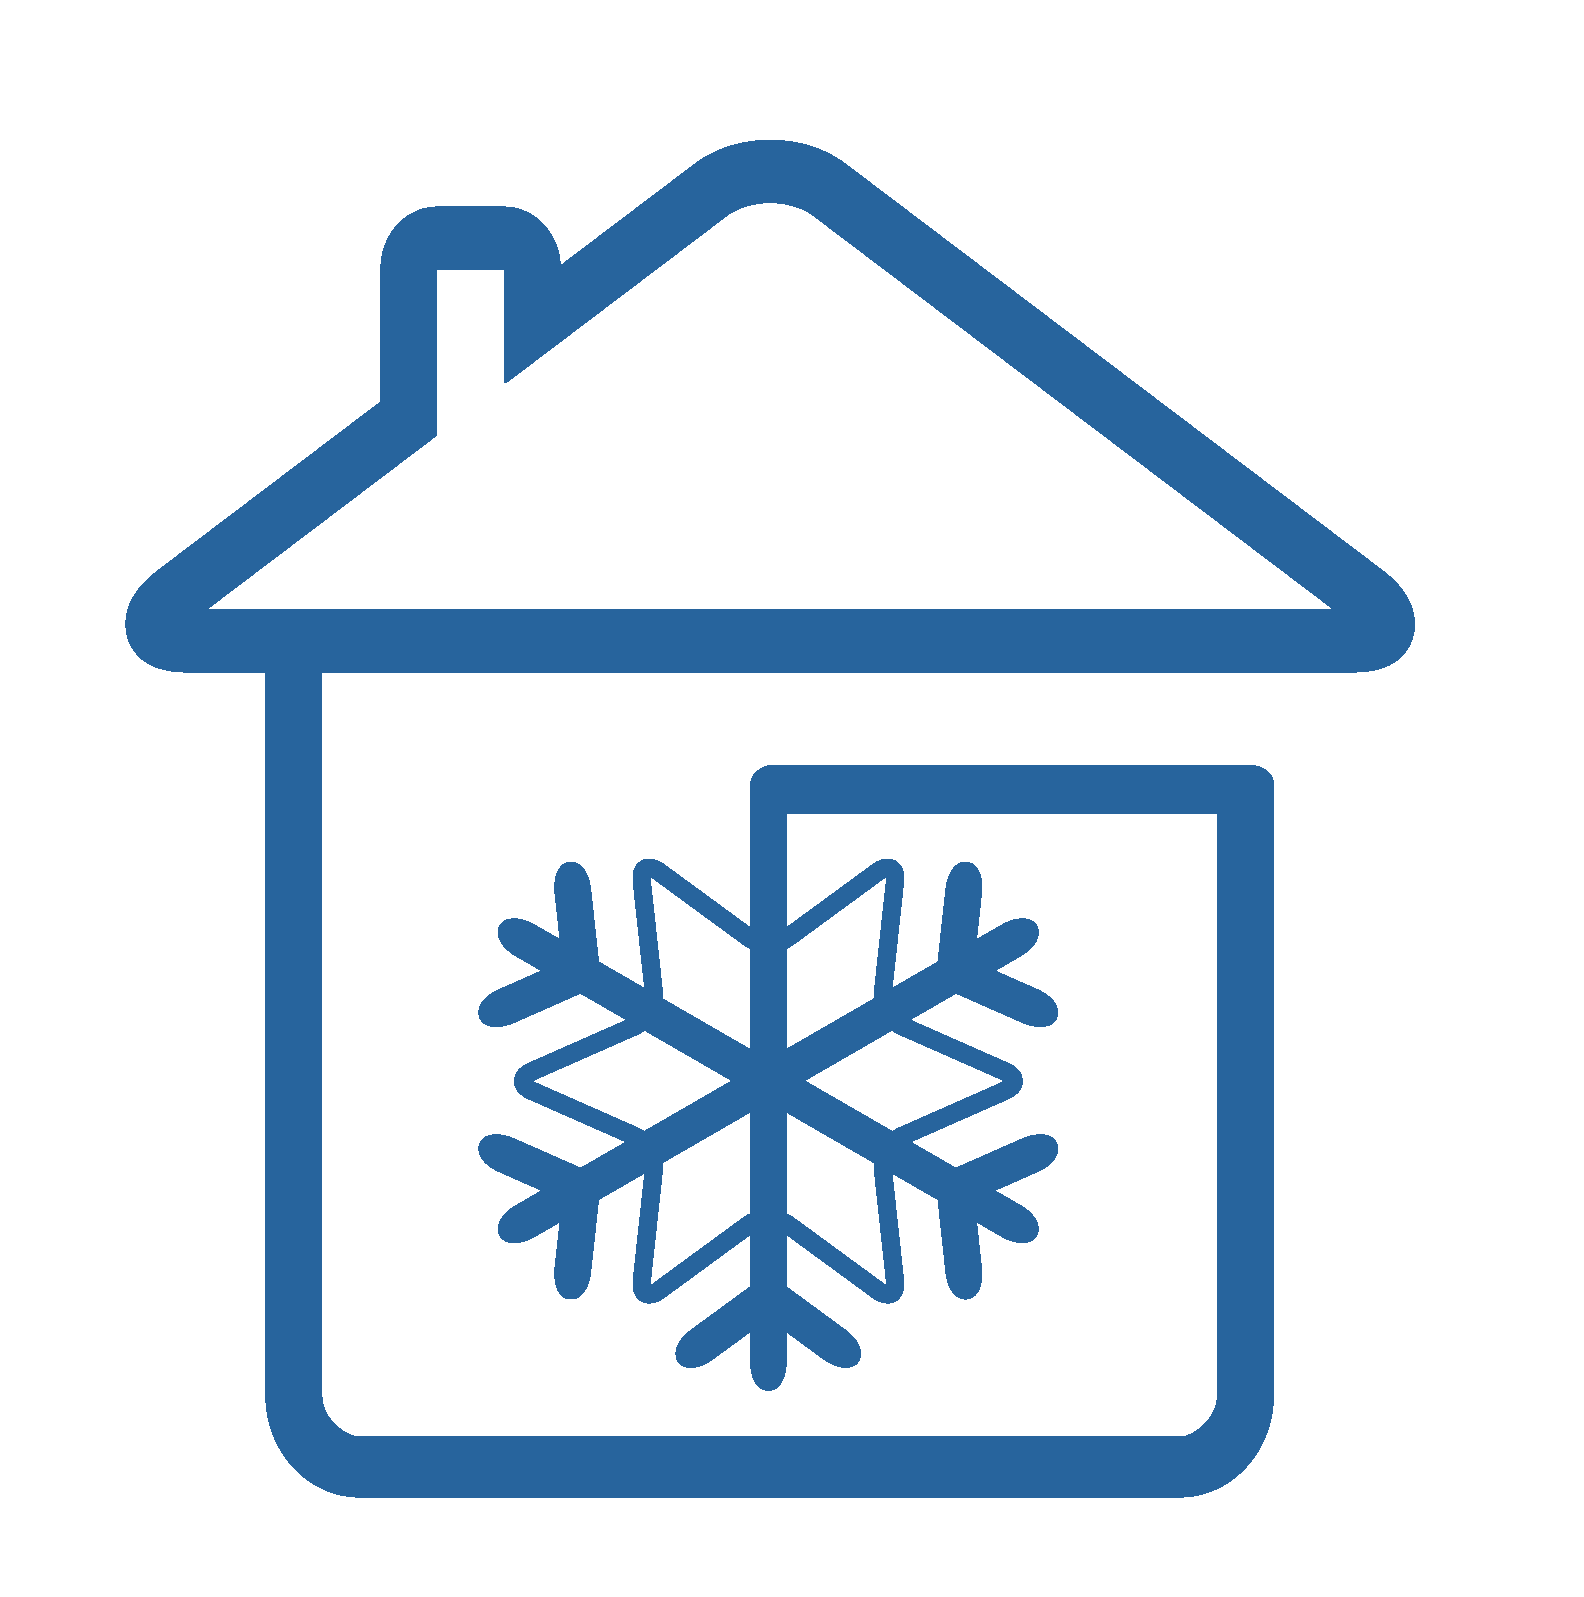 Central Air Conditioning and Ductless Mini-Split air conditioning installations, repairs and service for Bucks County, Montgomery County and Philadelphia County, Pennsylvania.